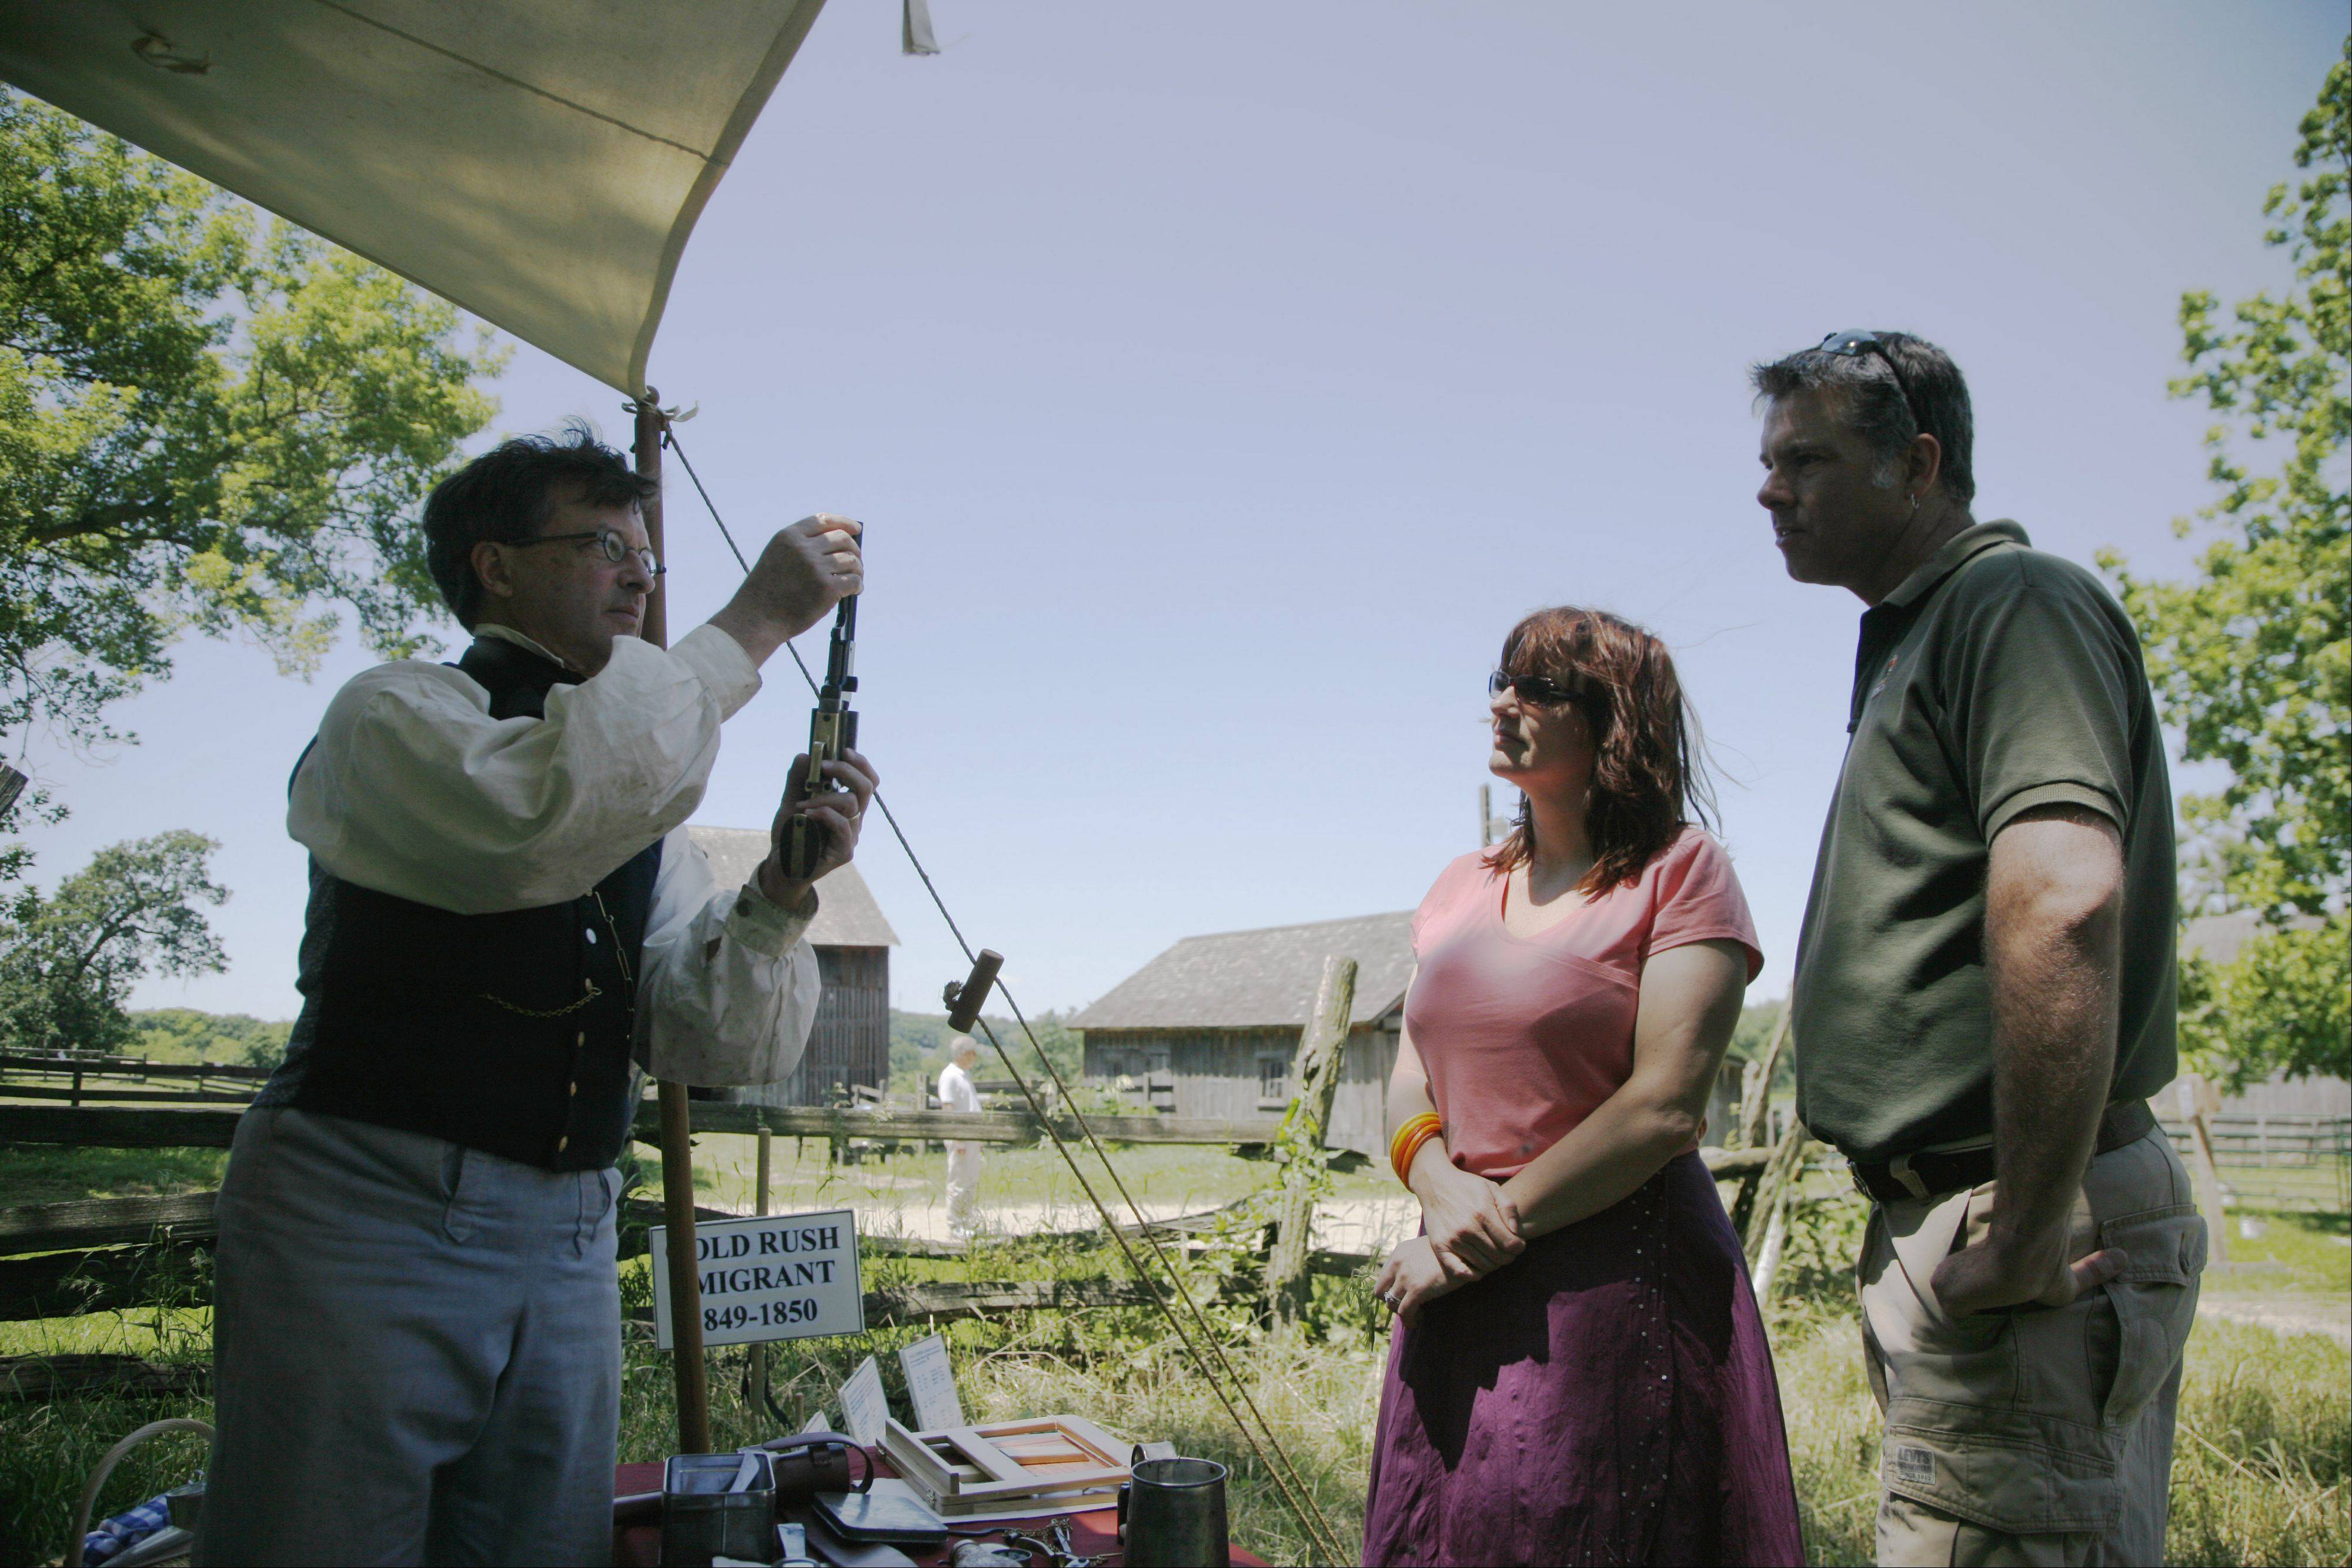 Keith Ryder of Wheaton shows an old revolver to Batavia residents Catherine and Ross Bennett during a previous 1840s Days event at Garfield Farm Museum.